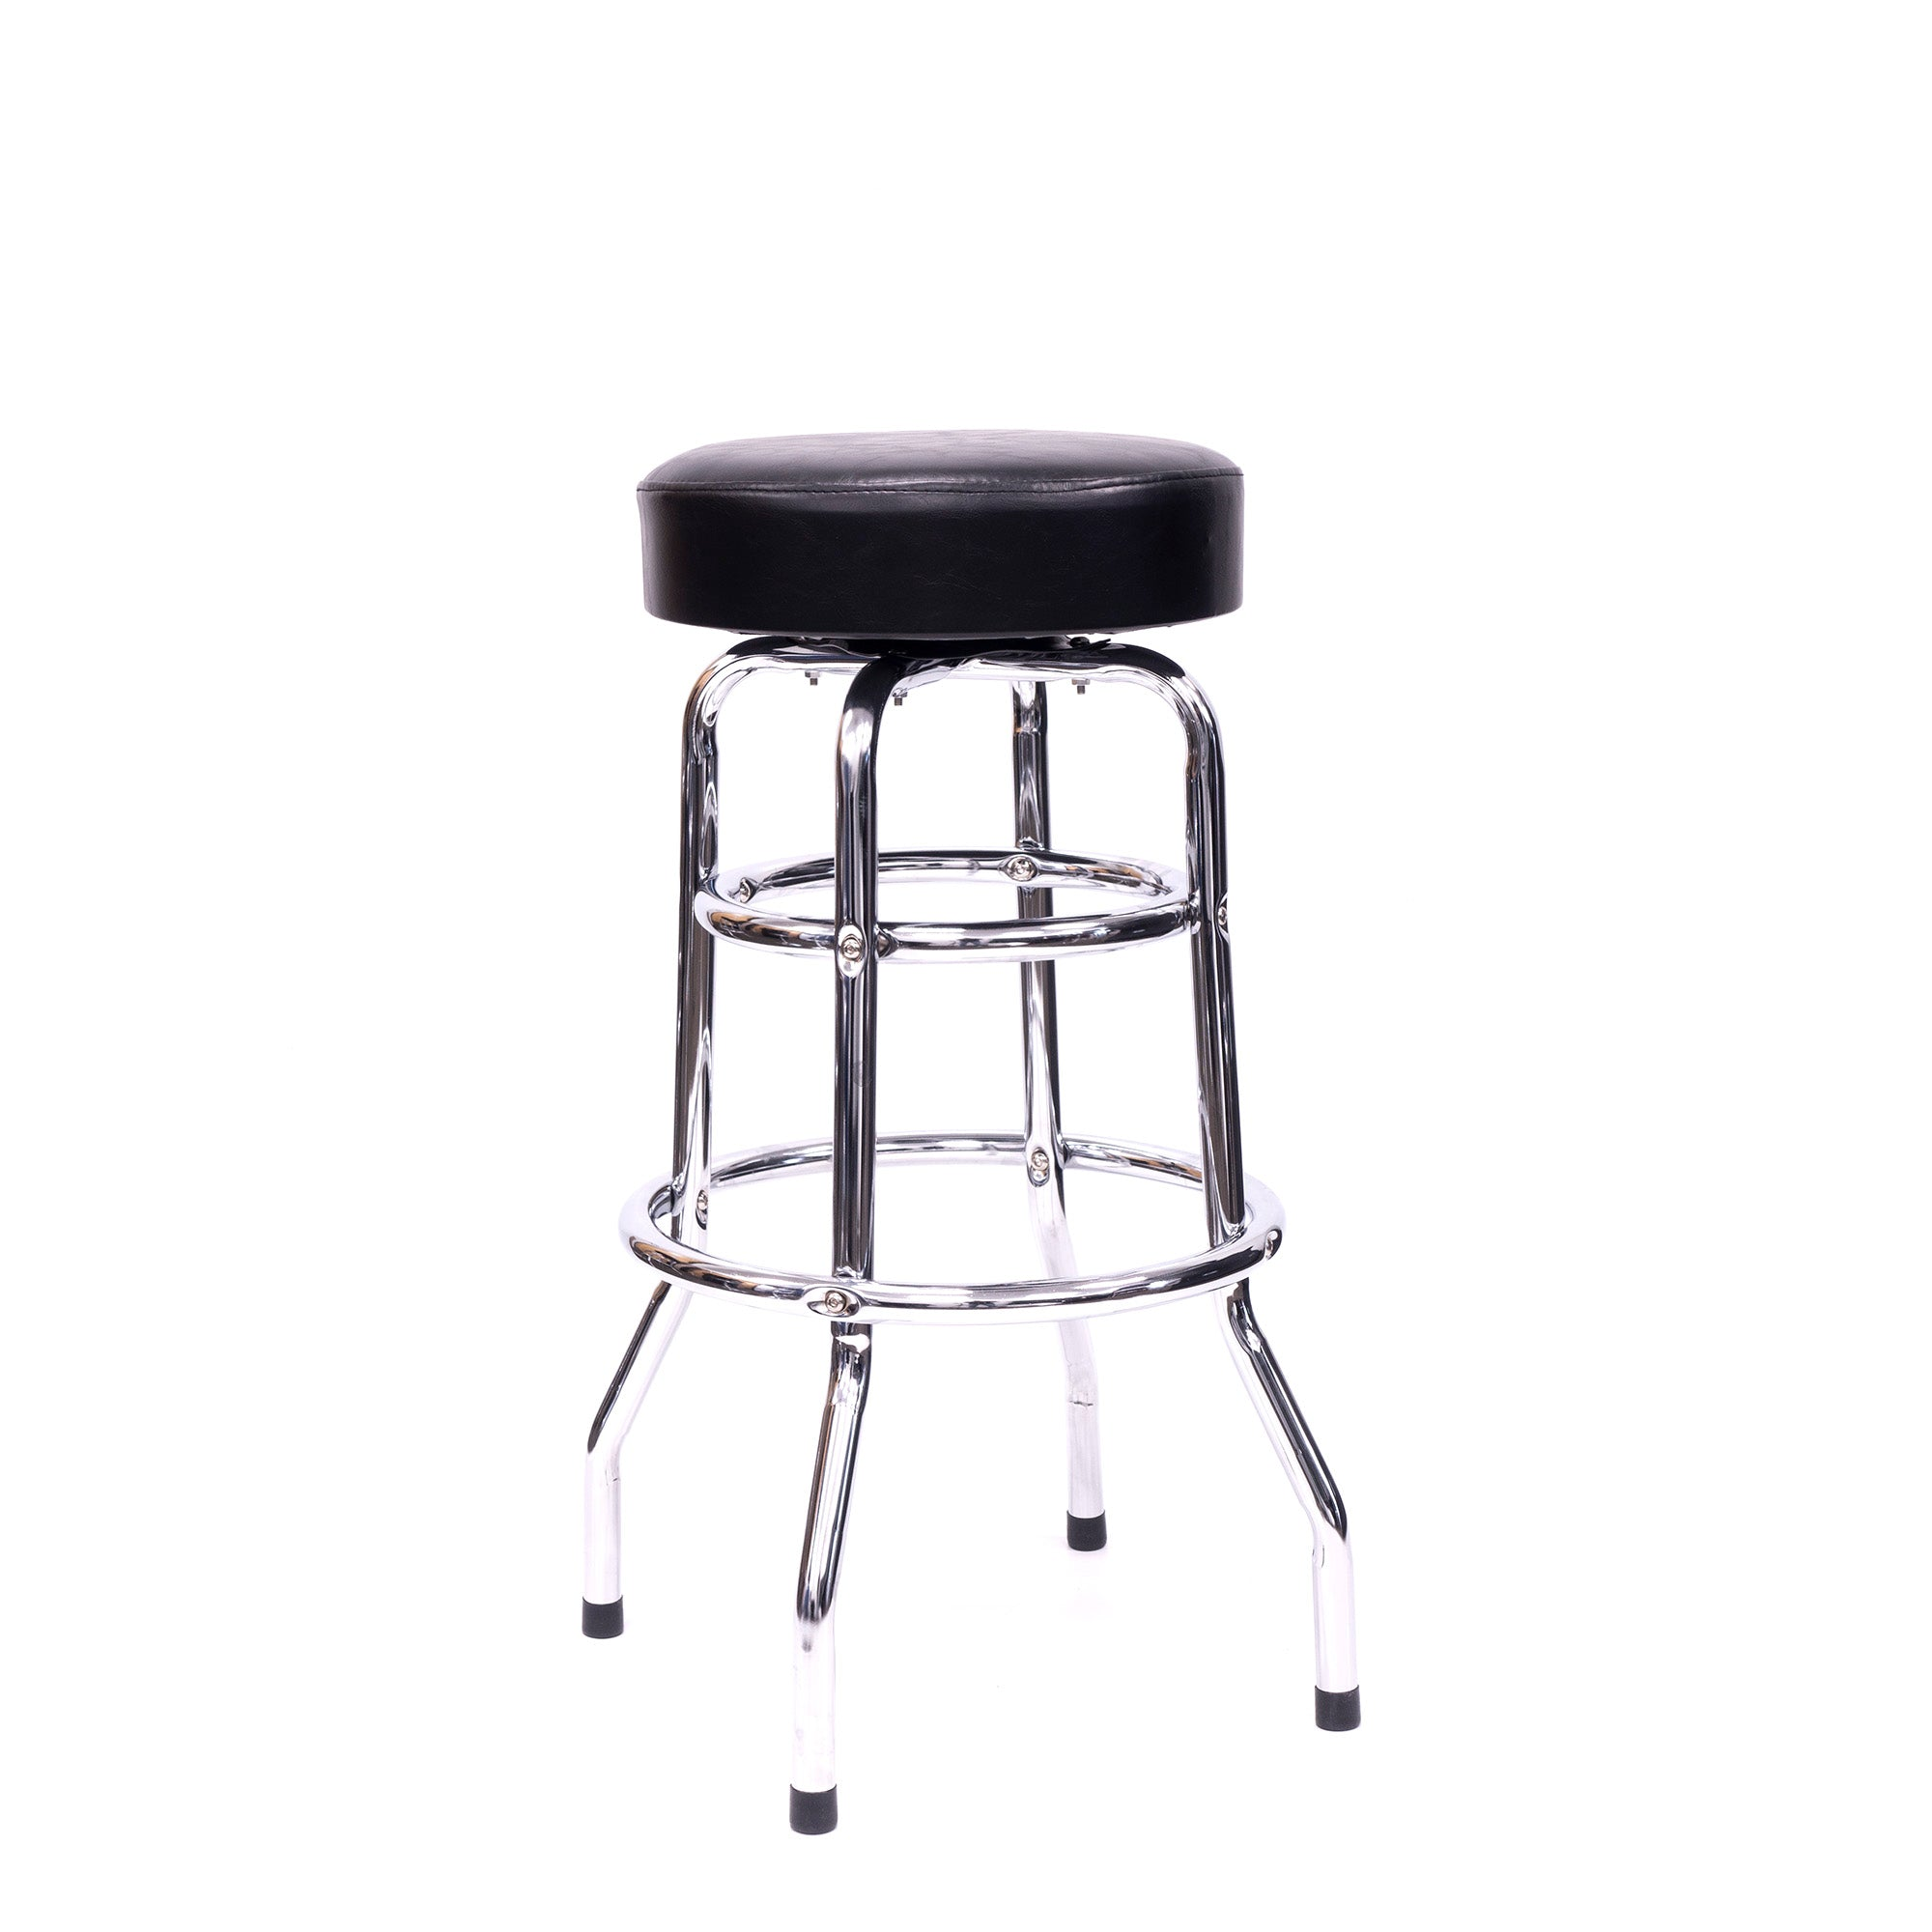 "30.5"" Full Swivel Bar Stool w/ Foot Rail & Padded Cushion"